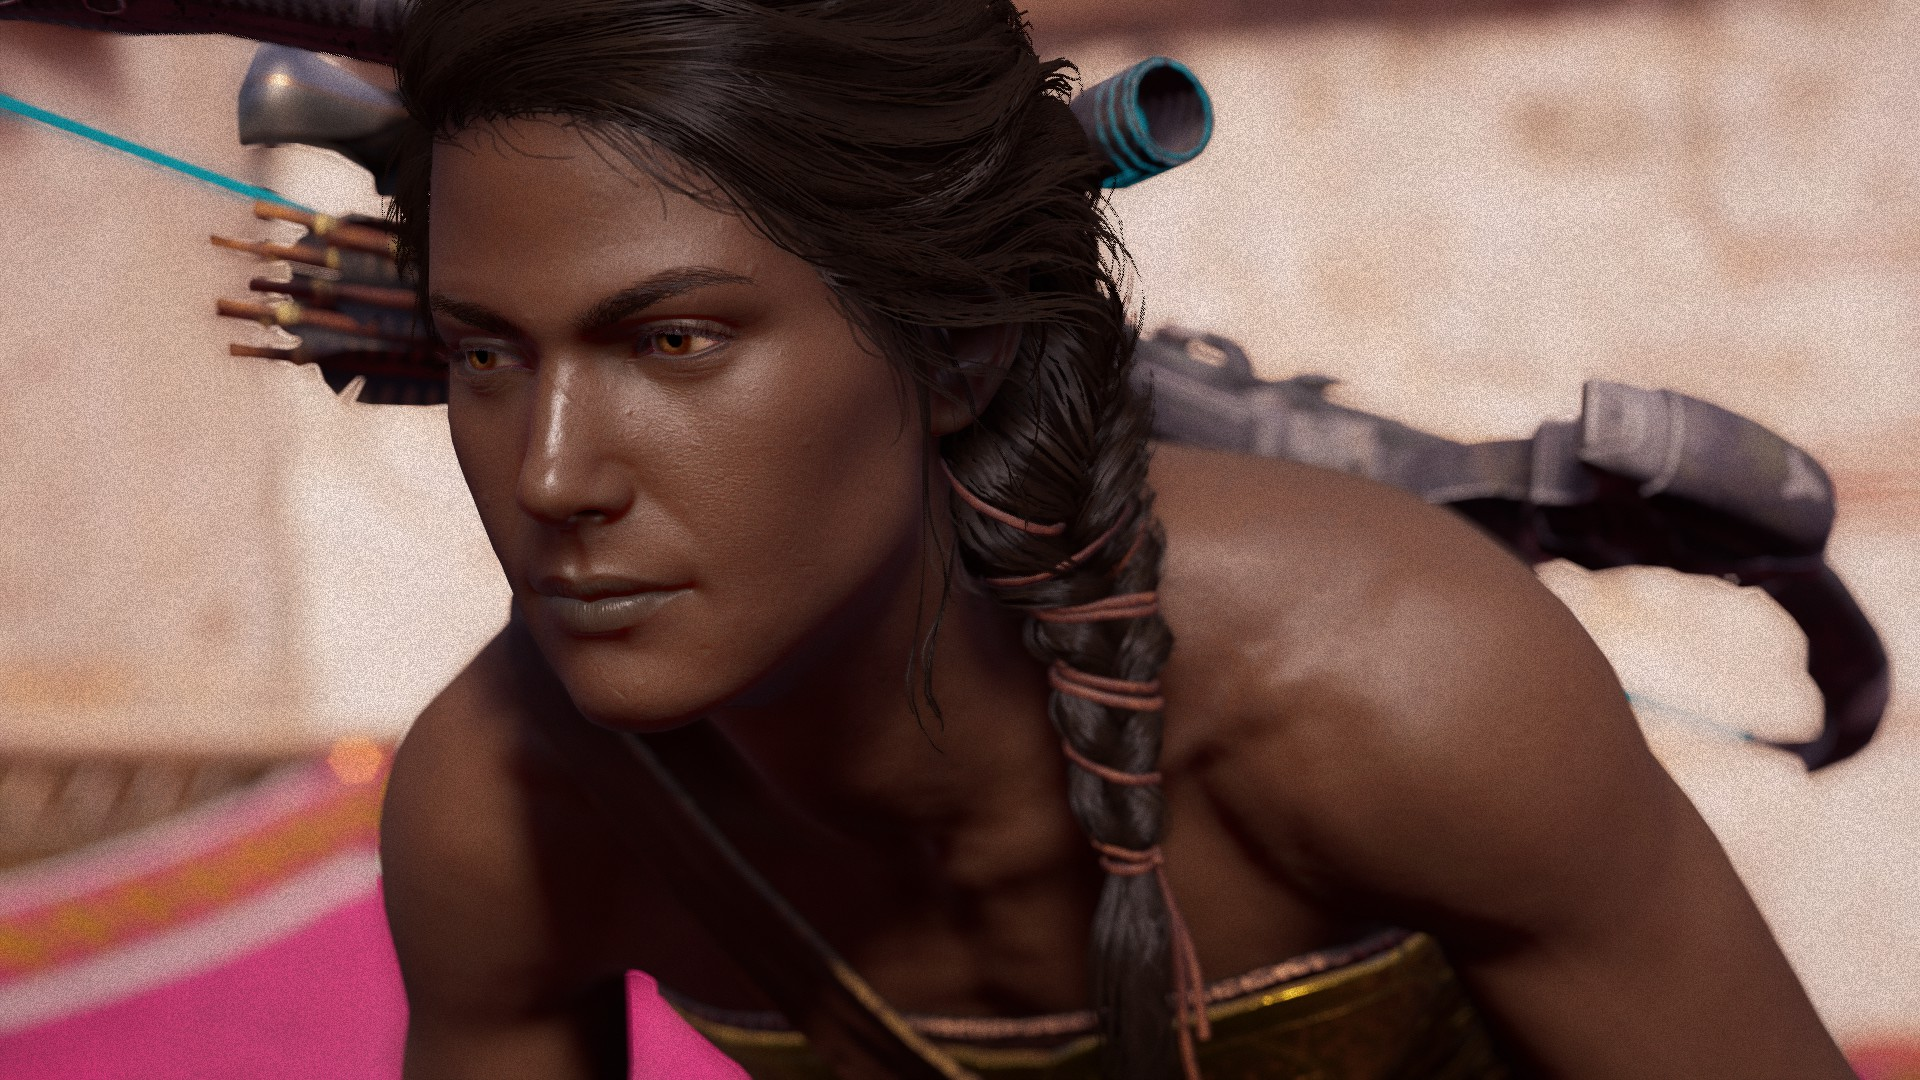 And you thought Kassandra was a meaty gal at Assassins